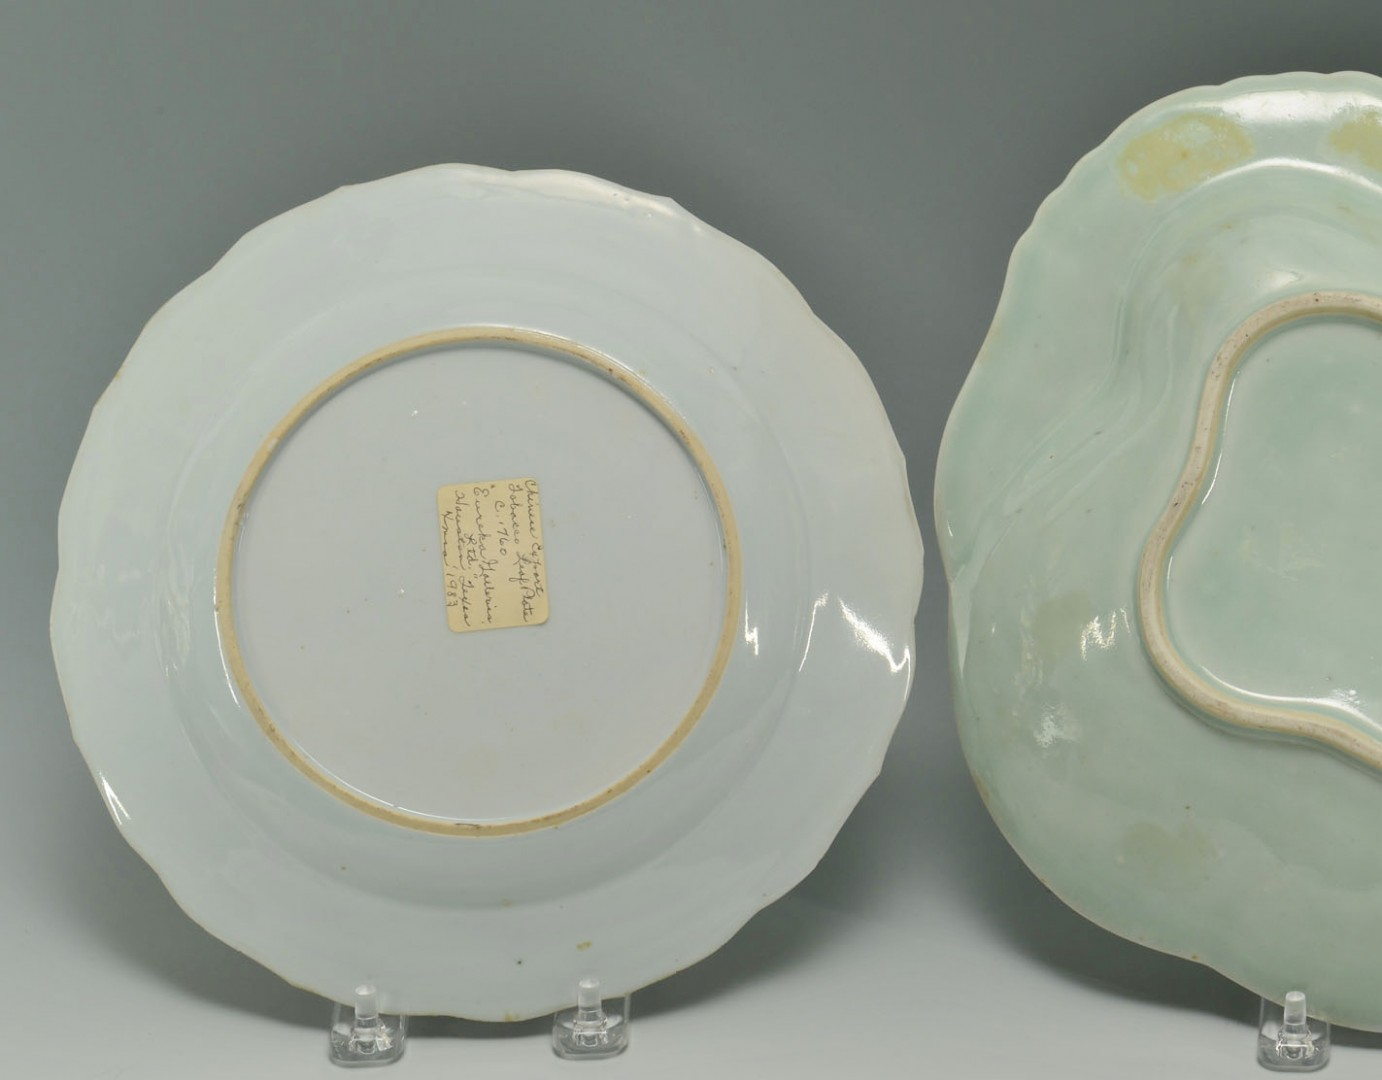 Grouping of 3 Chinese Porcelain Plates